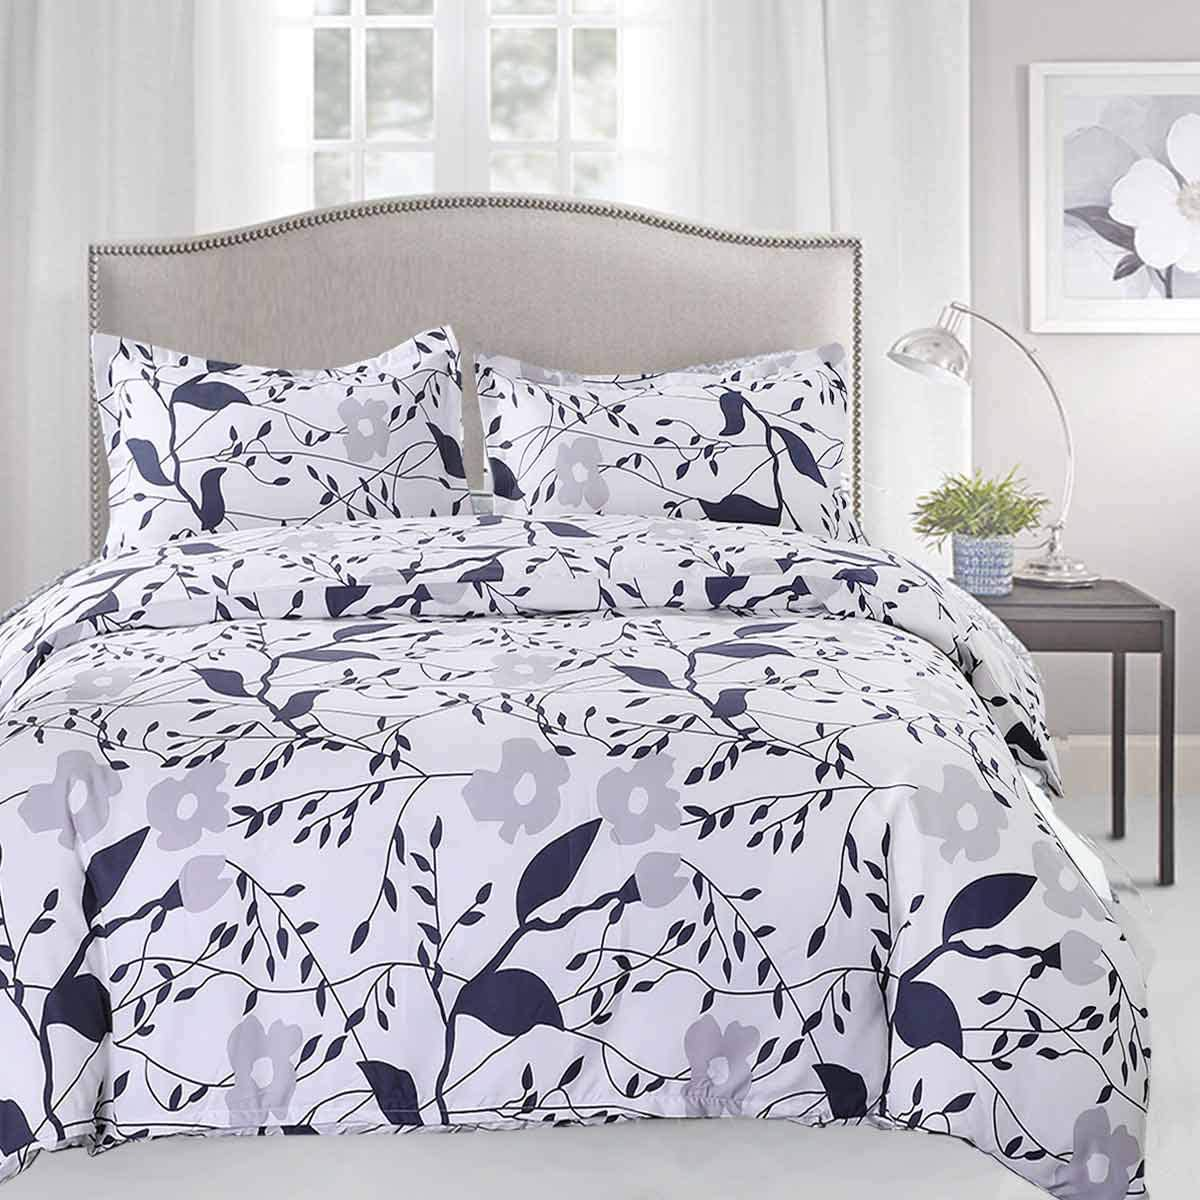 Duvet Cover Set Queen Size - 3 Pieces Floral Leaf Vintage Flower Microfiber Soft Lightweight Down Duvet Comforter Quilt Bedding Covers with Zip Ties - 90x90 inch for Women Men, Beige Navy Blue